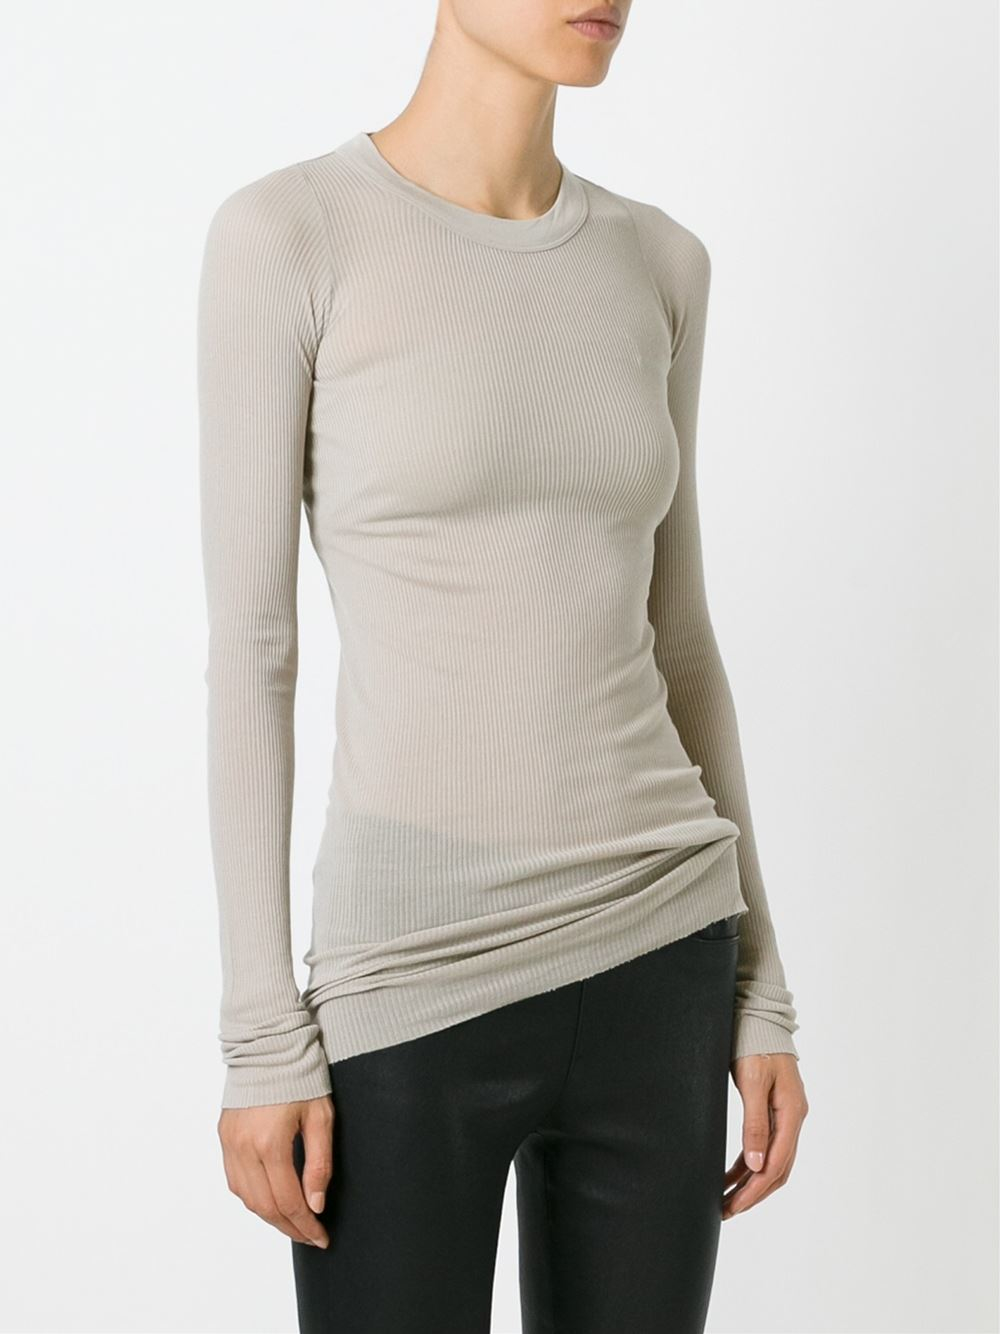 Be Unique. Shop nude long sleeve t-shirts created by independent artists from around the globe. We print the highest quality nude long sleeve t-shirts on the internet.